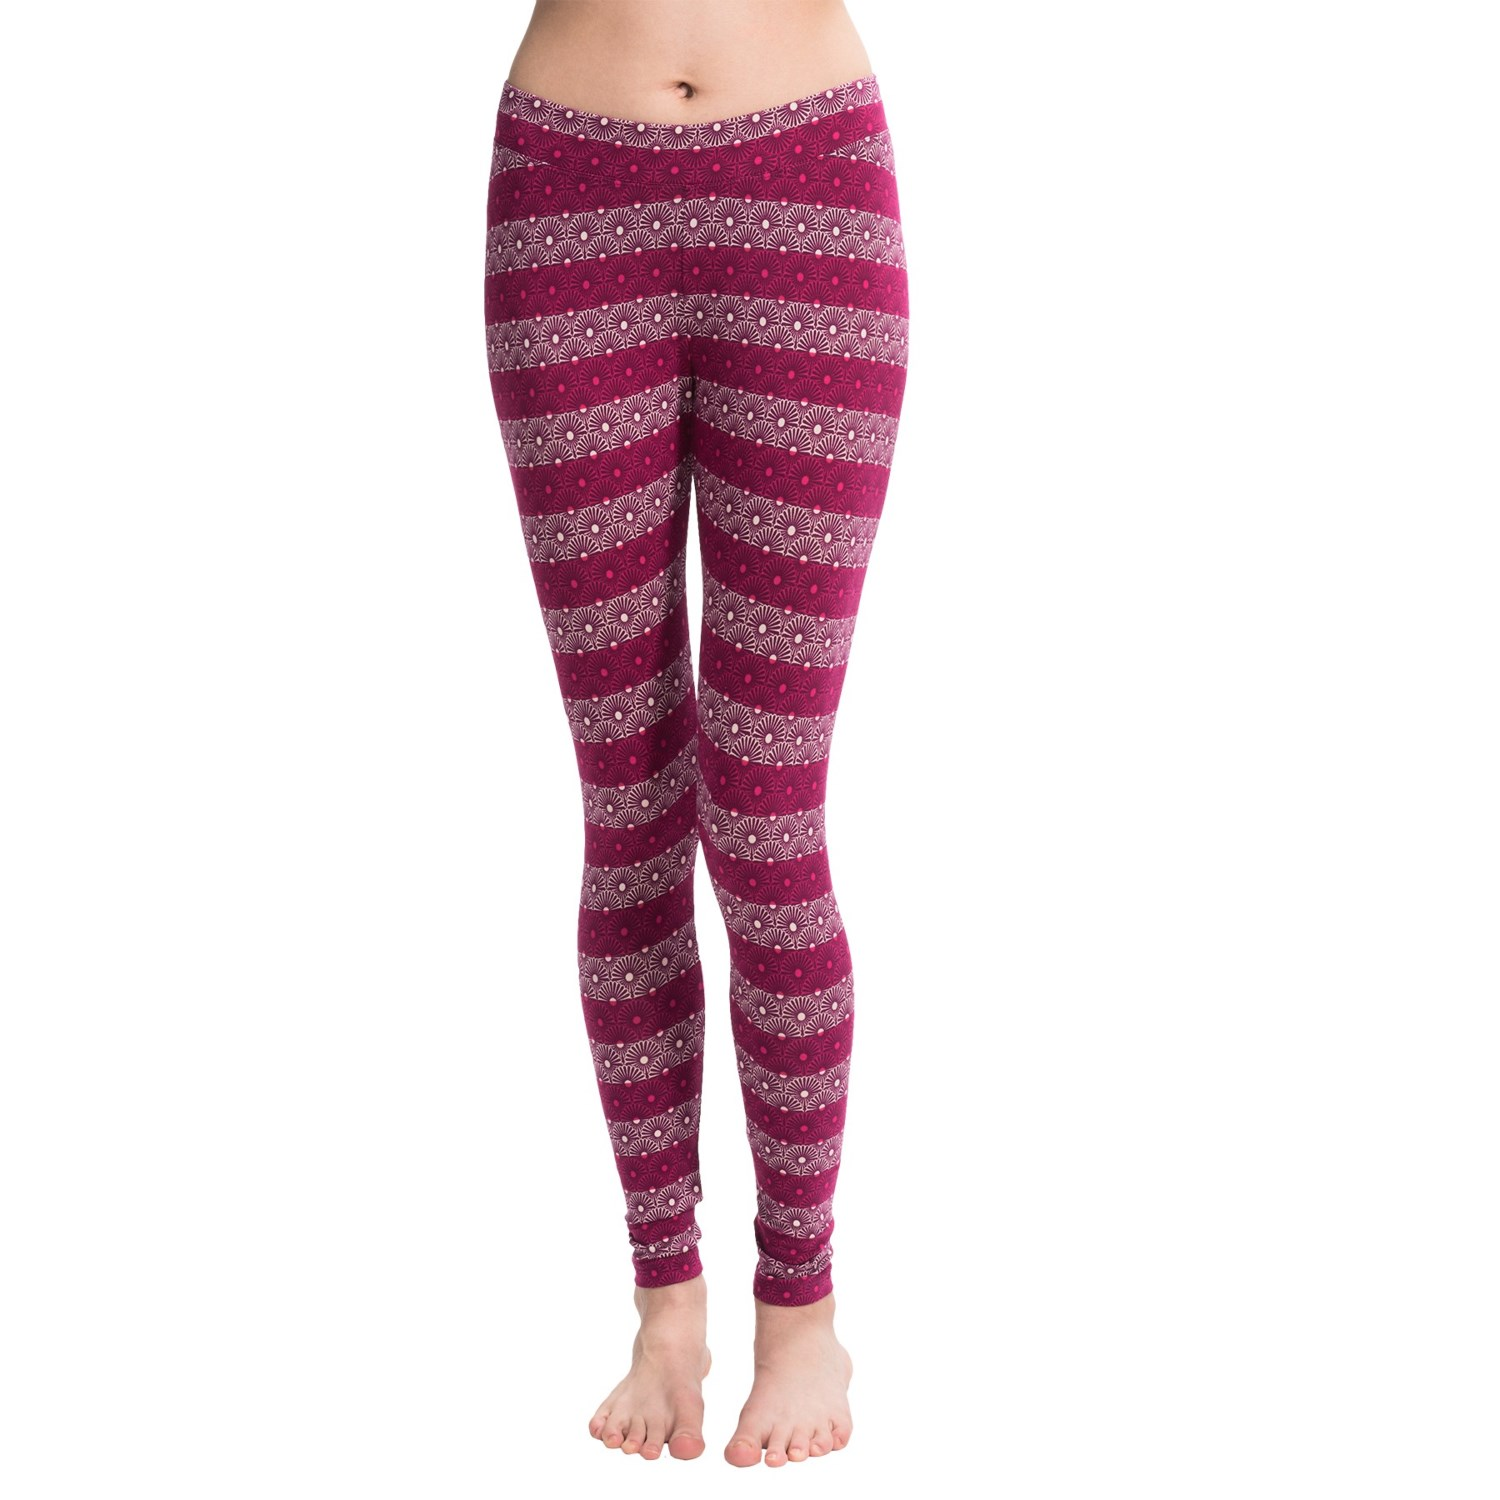 Women's Cotton Capri Cropped Leggings Pants - Variety of Colors. from $ 9 99 Prime. 4 out of 5 stars CakCton. Womens Fleece Lined Leggings High Waist Buttery Soft Stretchy Warm Best Leggings - One Size. from $ 8 98 Prime. out of 5 stars iLoveSIA. Womens Running Leggings Yoga Pants.